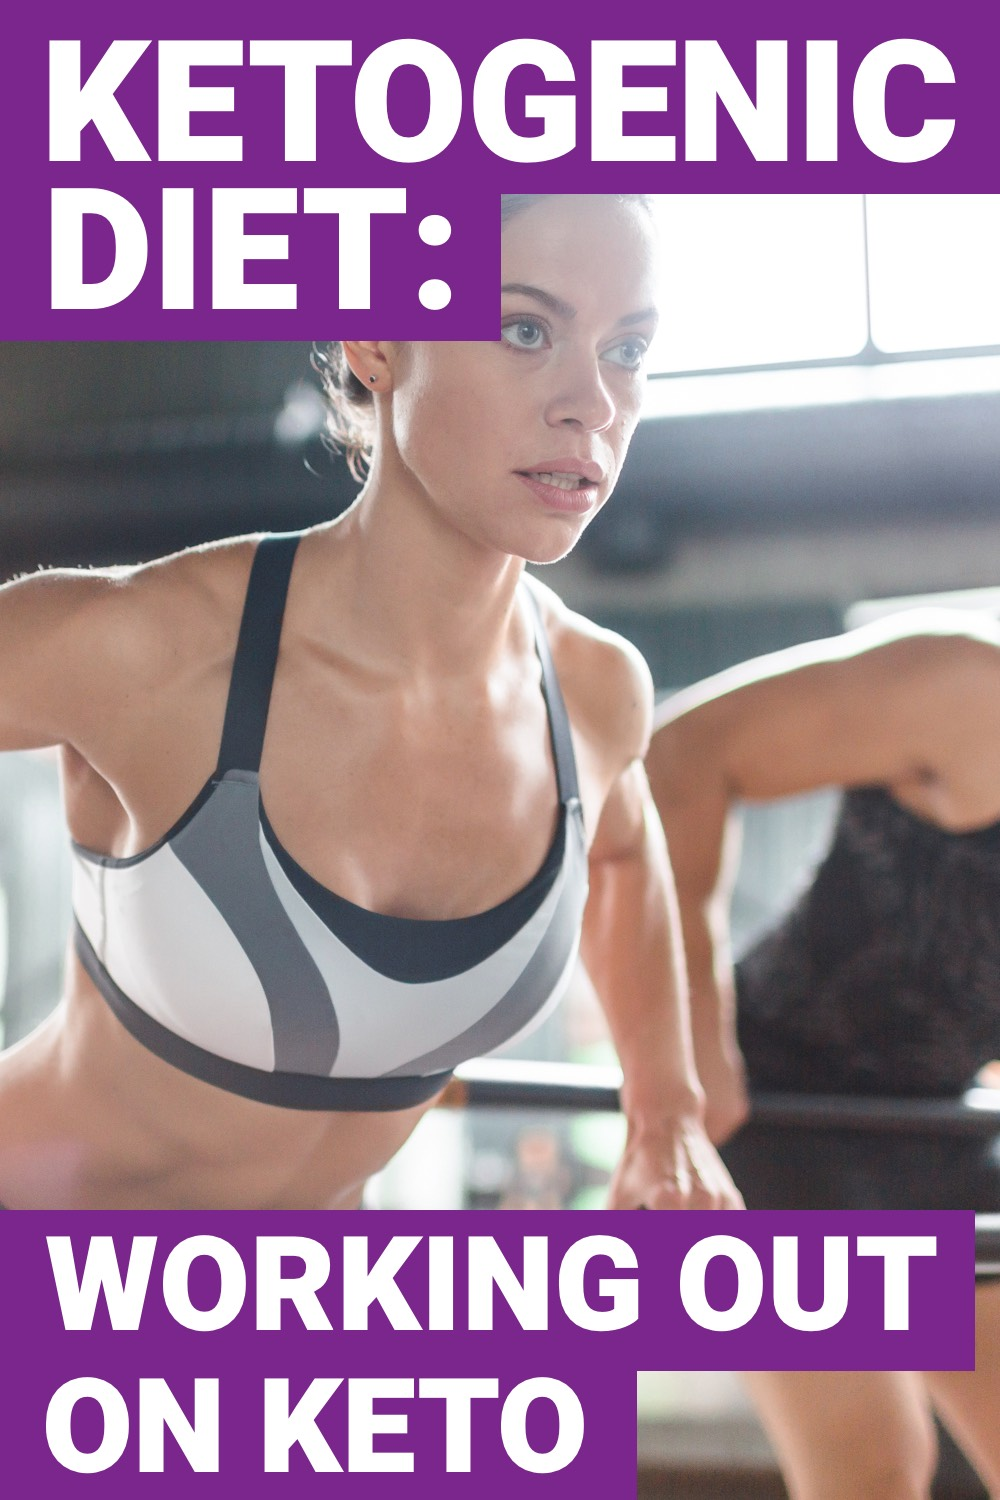 Is working out on the ketogenic diet a good idea? Find out here and see how exercise will affect your body and ketosis status.